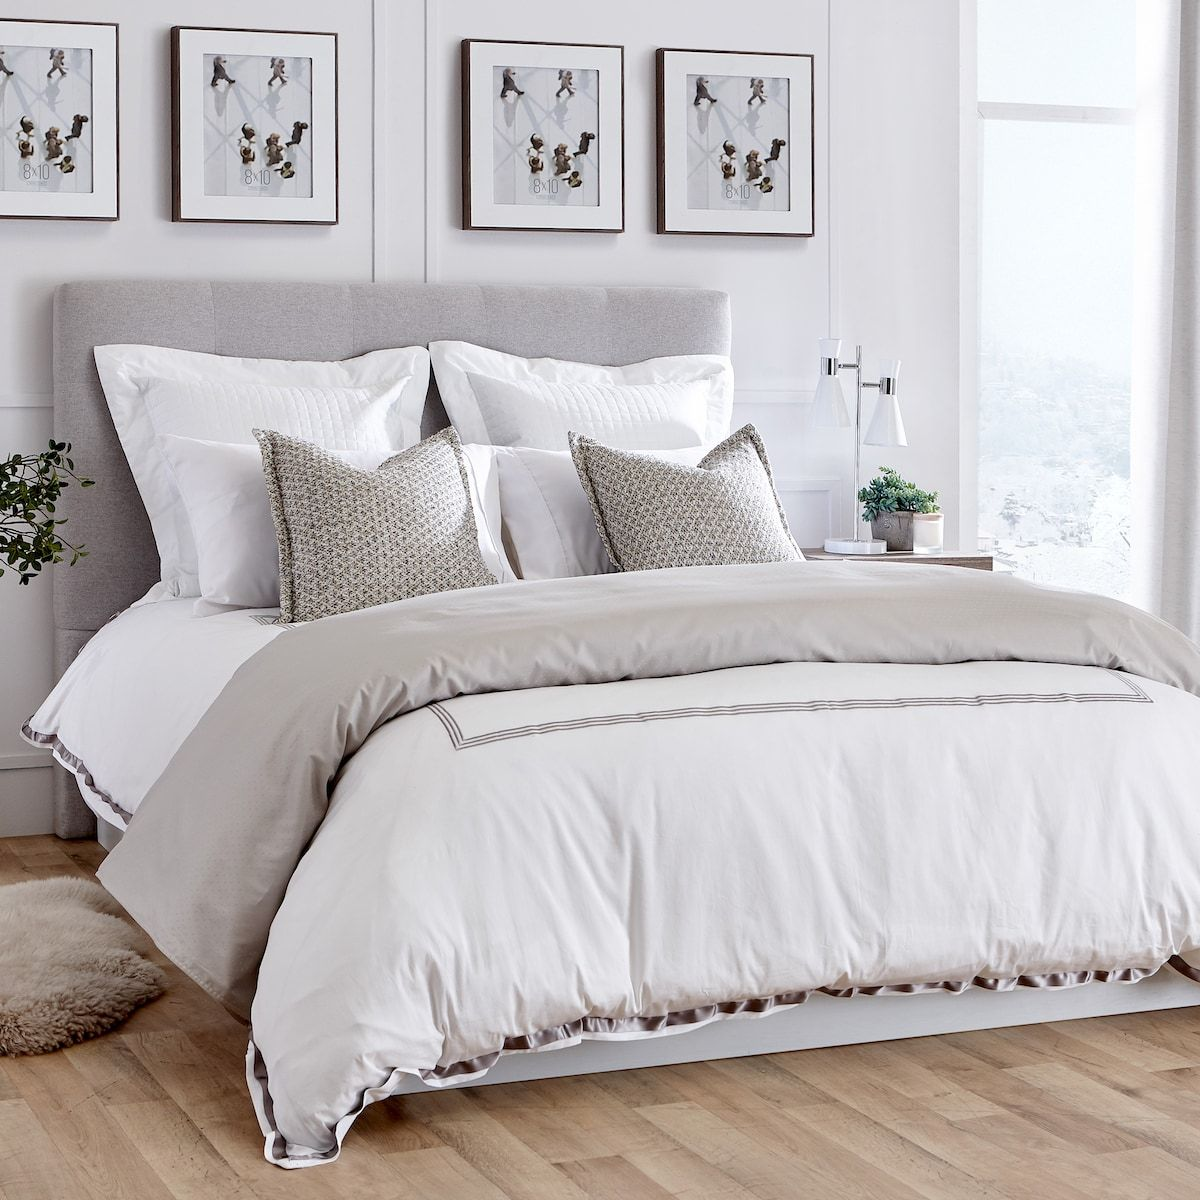 Linen Chest Palace Hotel Bedding Collection Sheet Set Double Silver In 2020 Hotel Bed Hotel Collection Bedding Bedding Collections